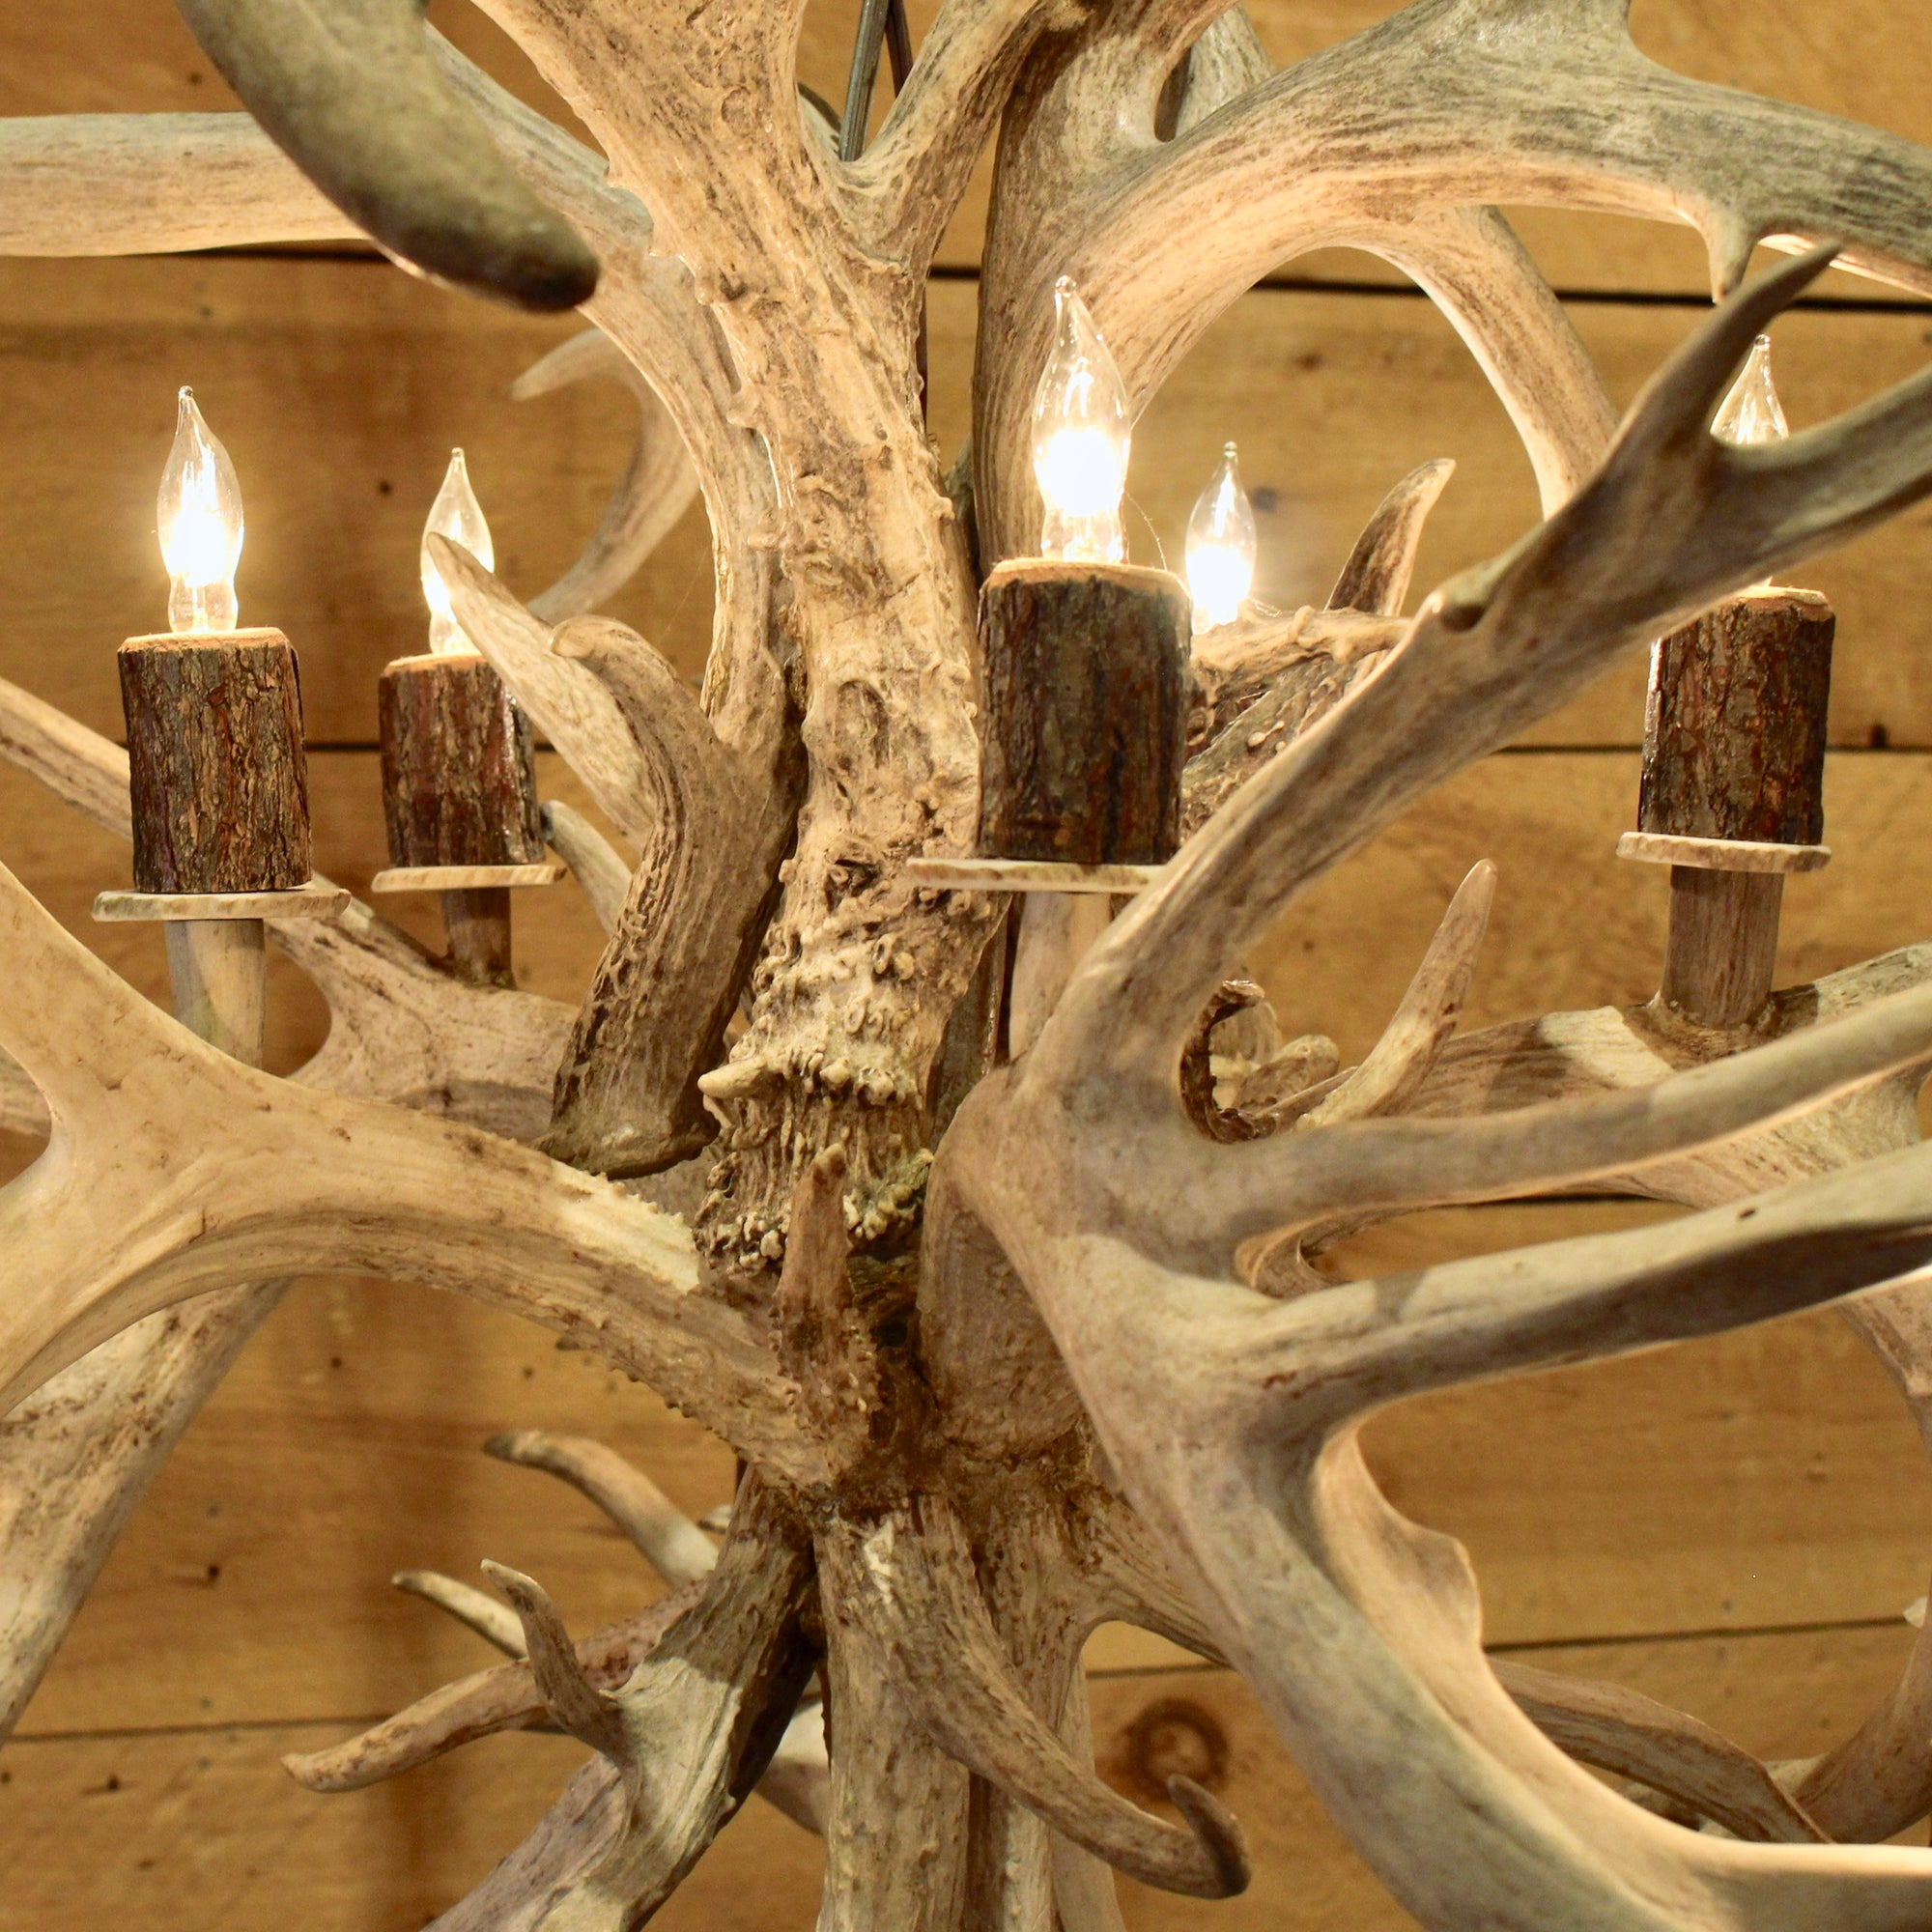 White tail antler globe chandelier rustic adirondack lighting rustic non typical whitetail antler chandelier aloadofball Gallery